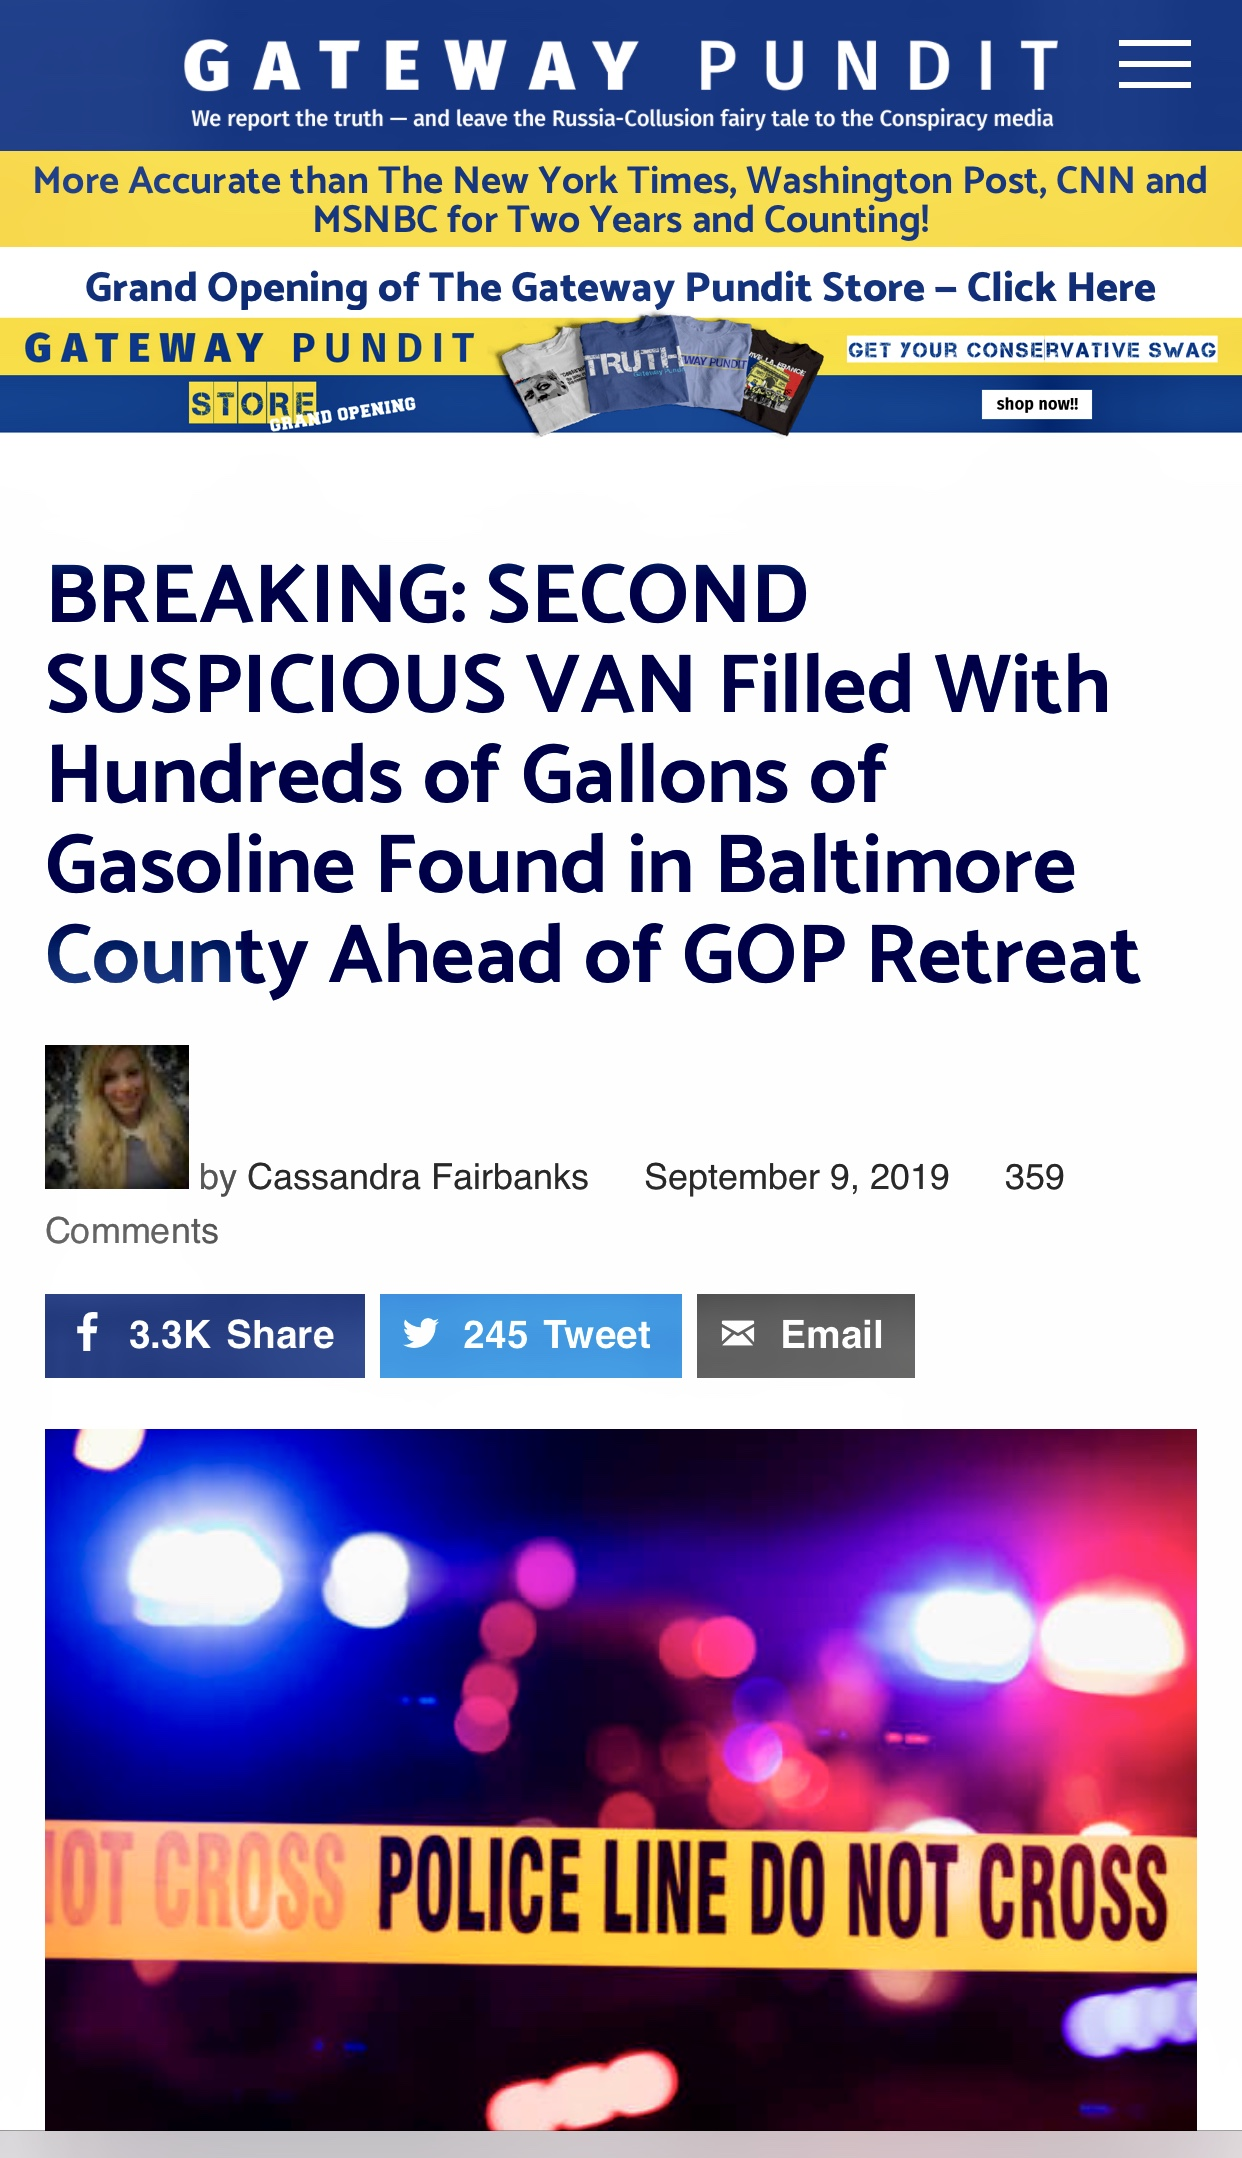 BREAKING: SECOND SUSPICIOUS VAN Filled With Hundreds of Gallons of Gasoline Found in Baltimore County Ahead of GOP Retreat